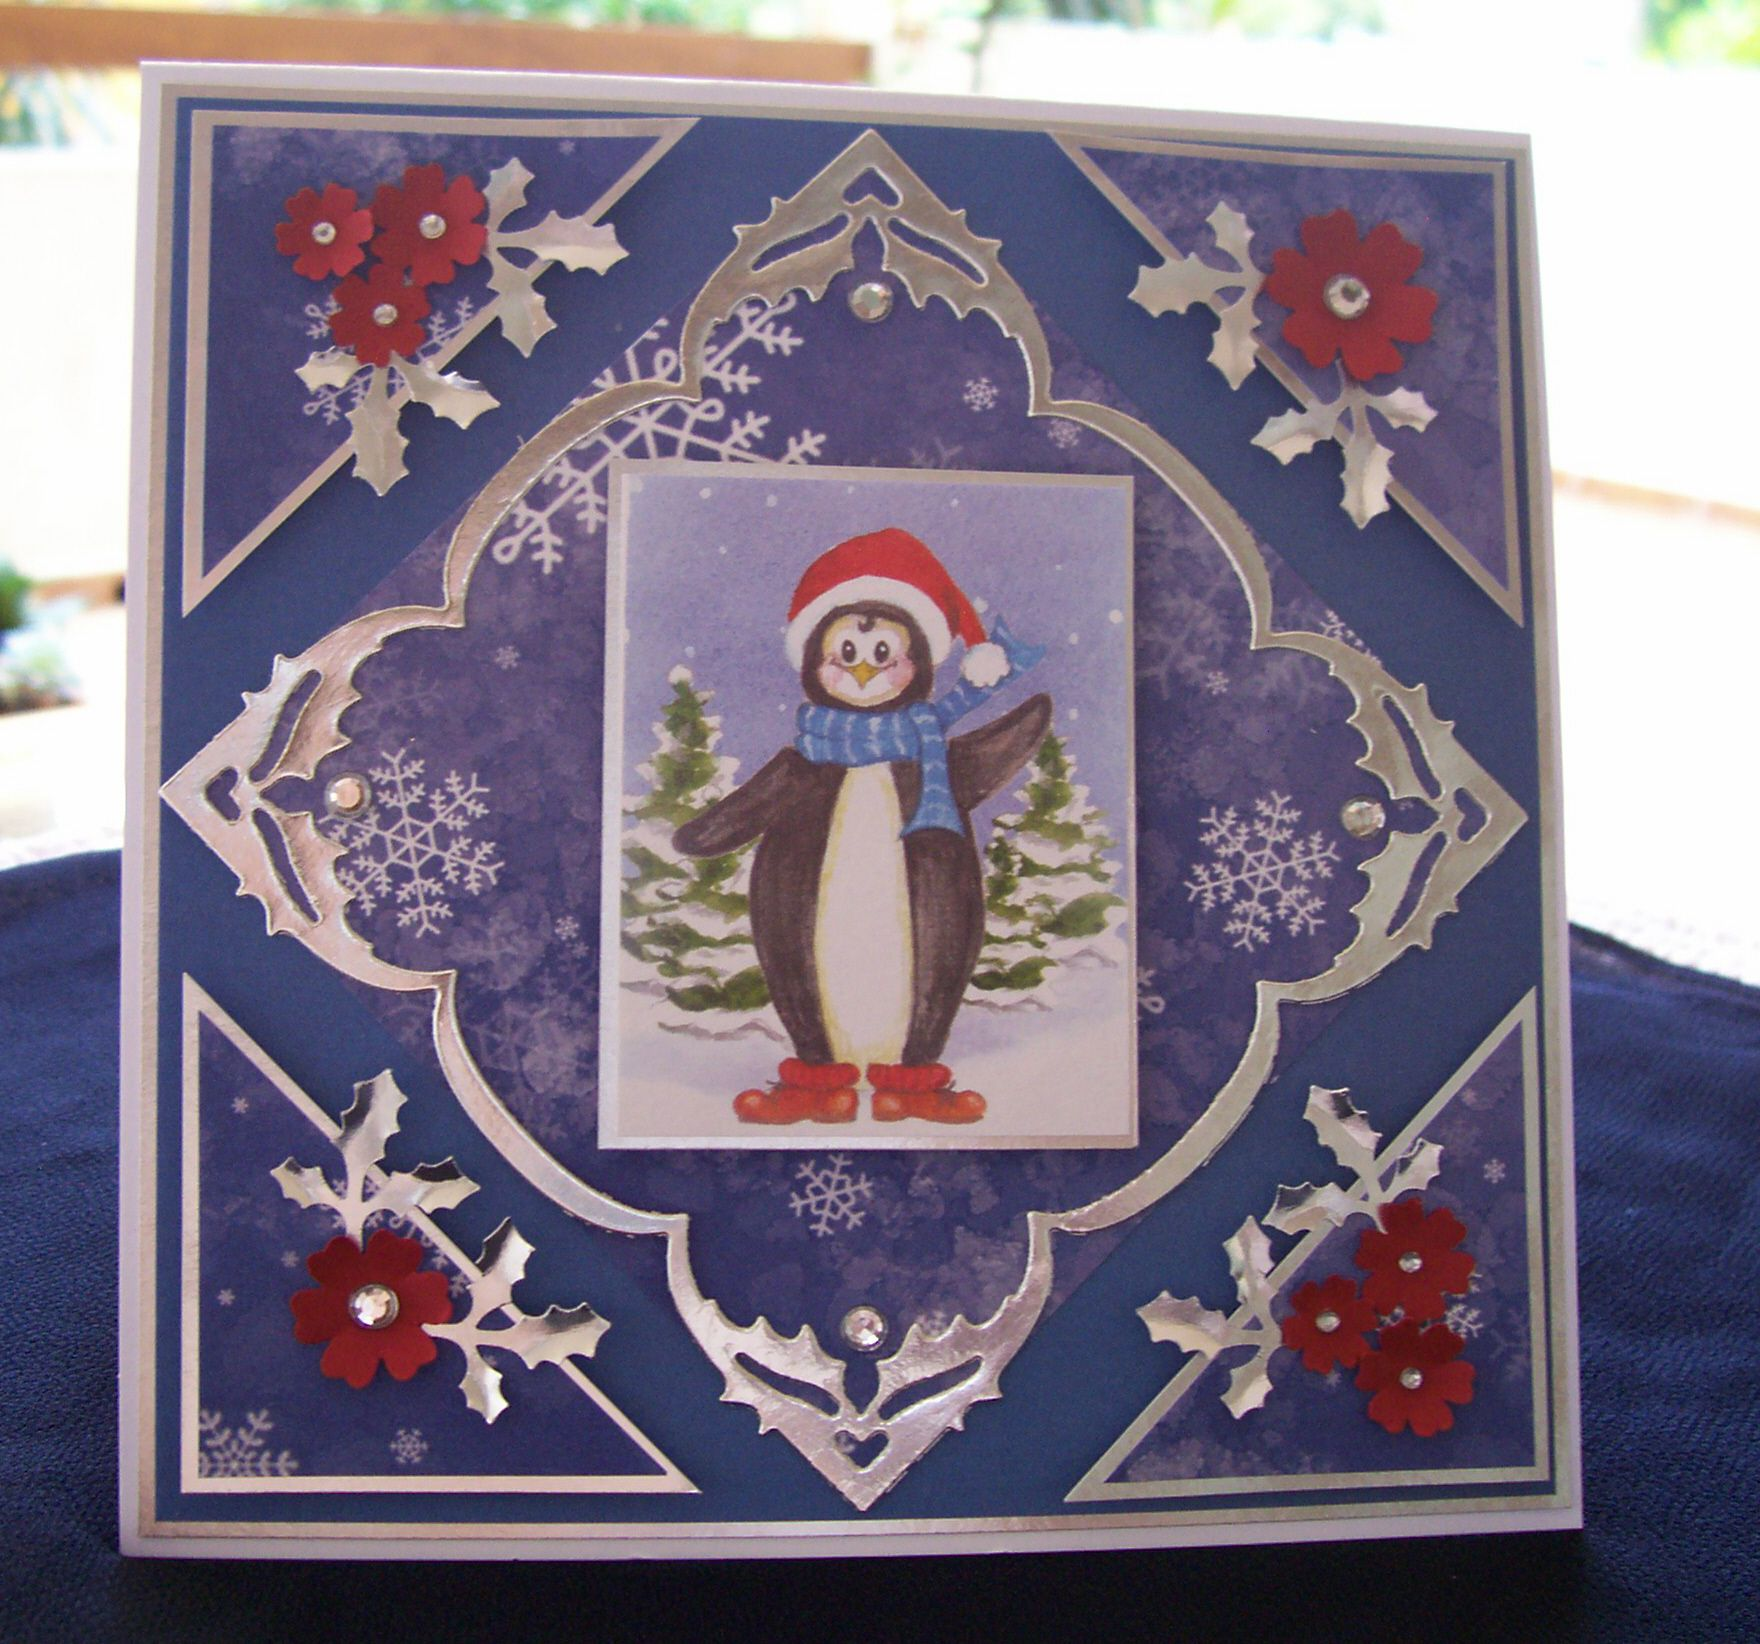 Silver and blue Christmas card with accents of red in the image and flowers.